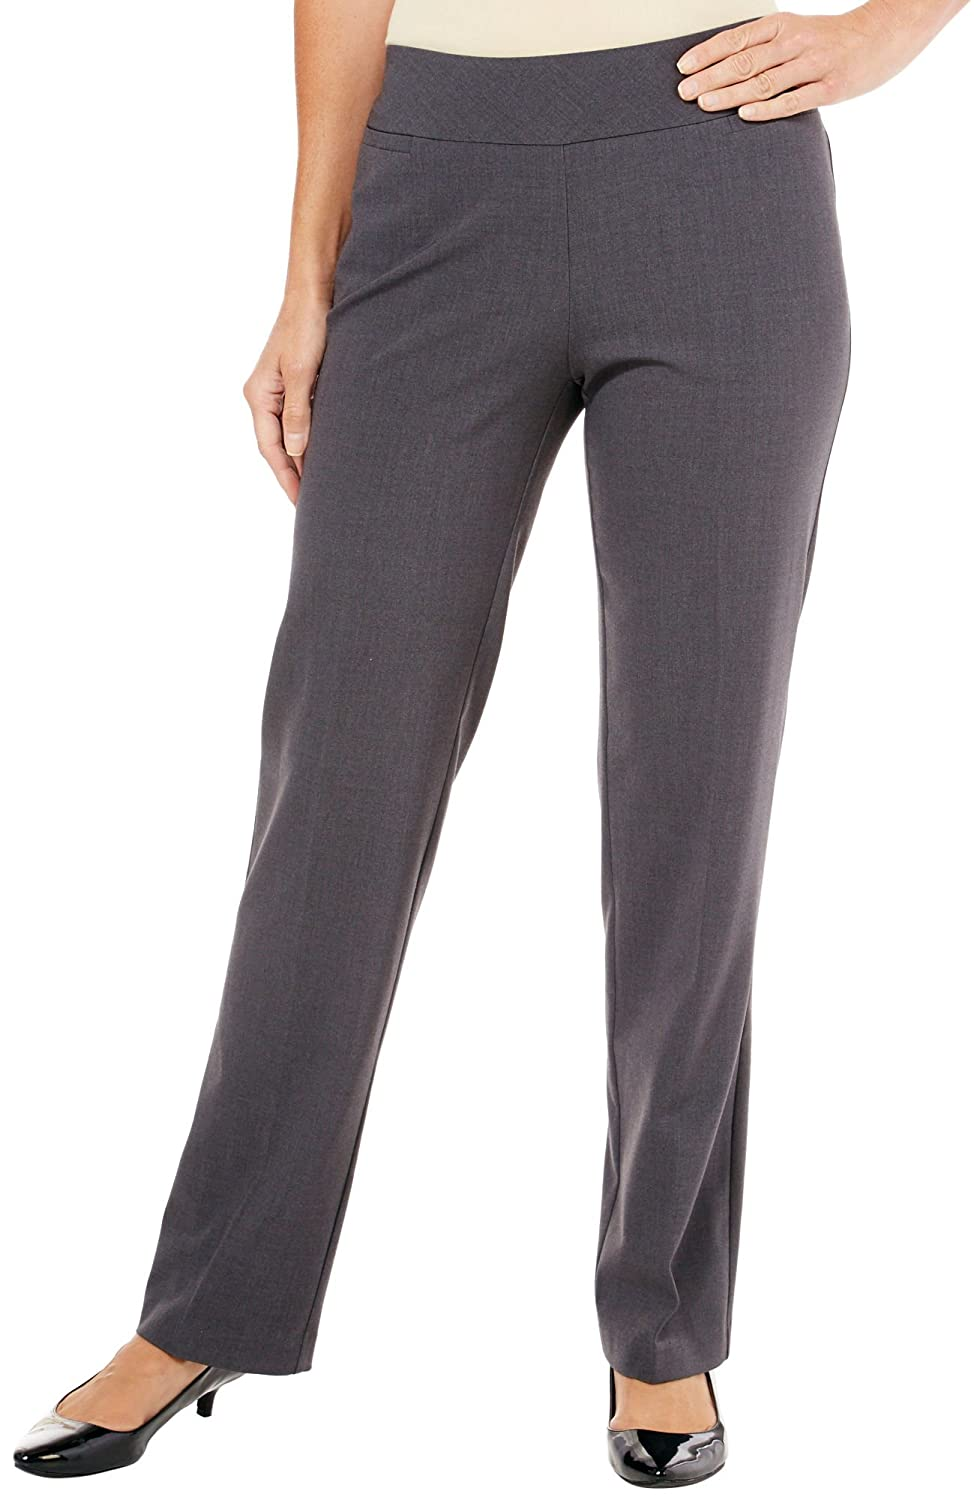 Counterparts Petite Solid Pull-On Pants 12P Charcoal